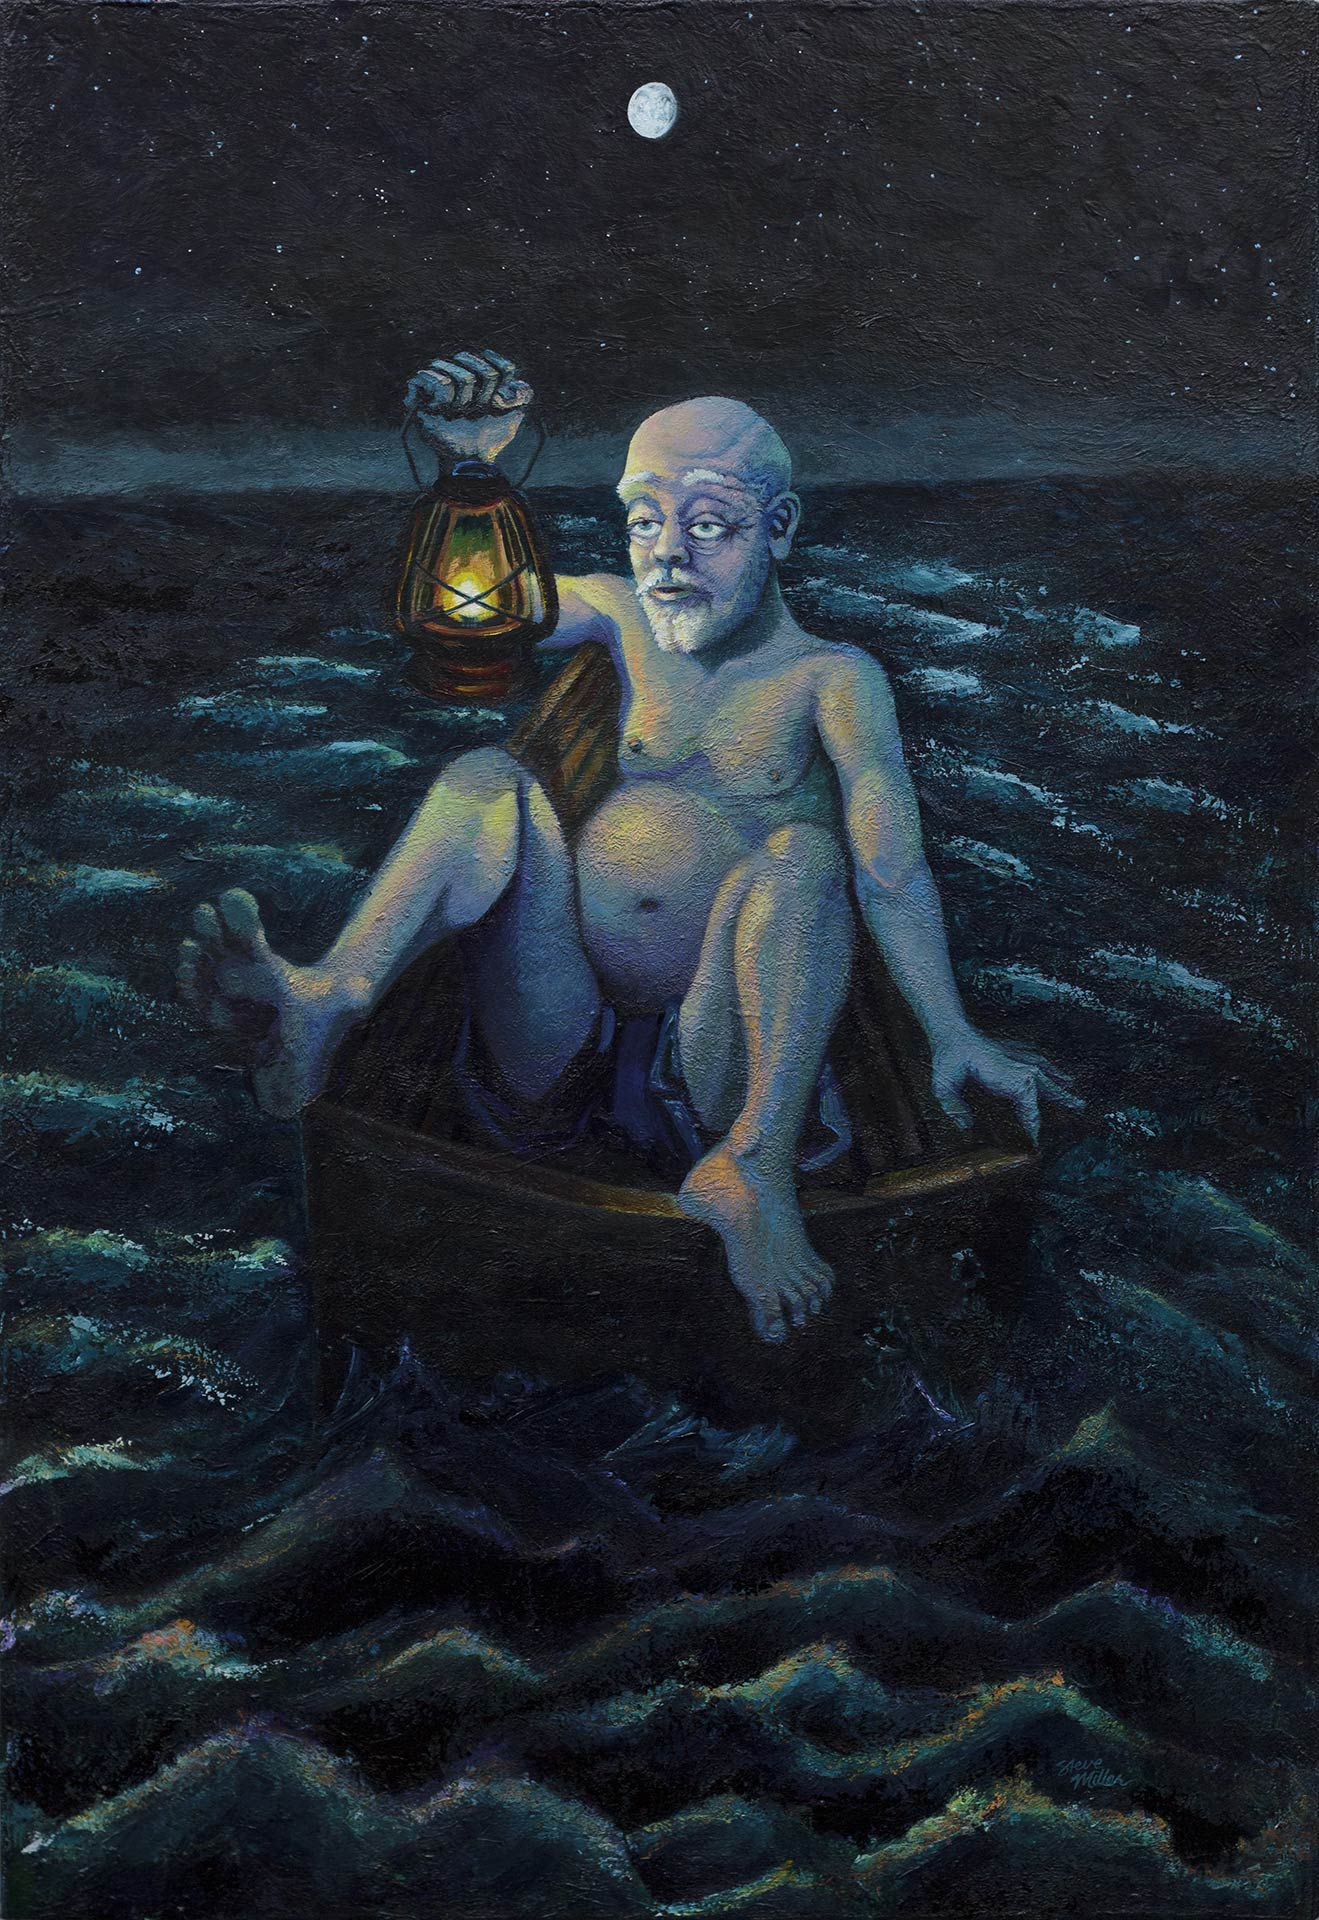 This painting features an older large white male, nearly naked, sitting in a tiny rowboat in the middle of the sea, at night, holding a lantern.